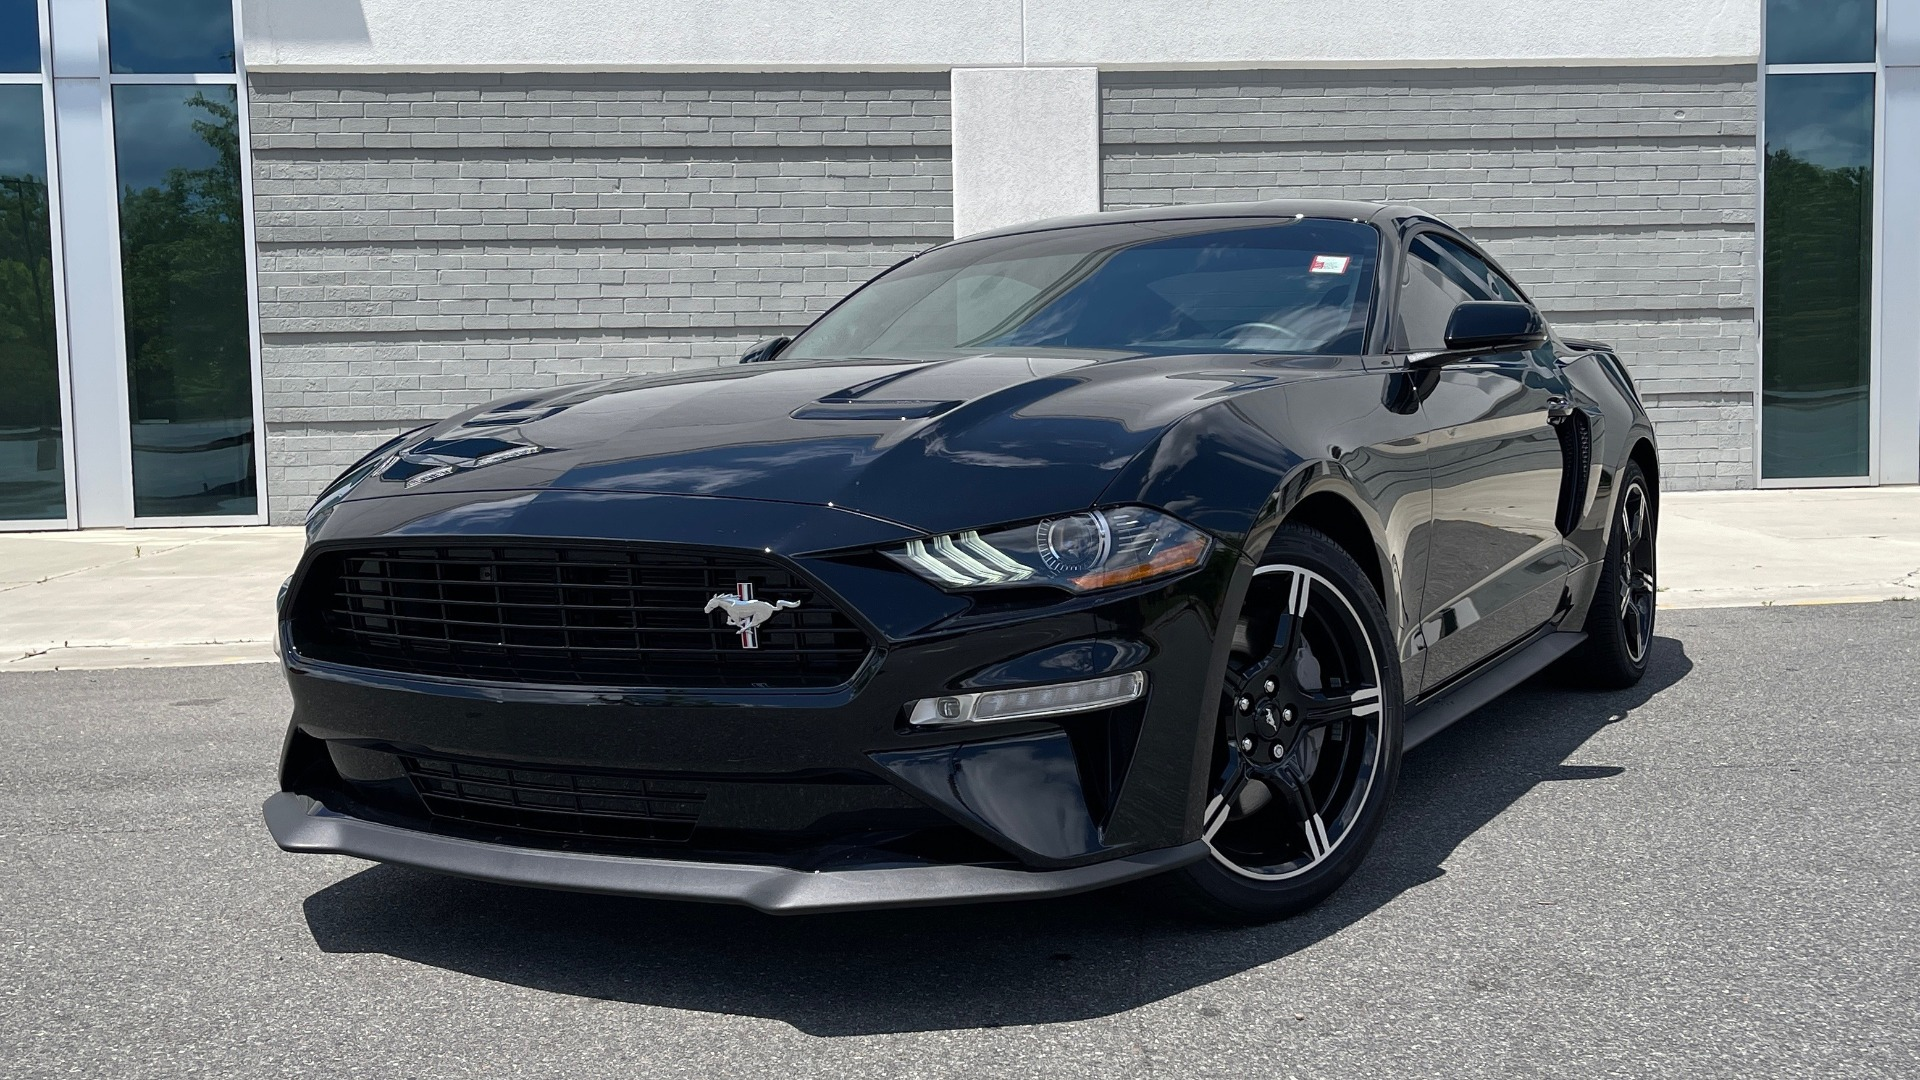 Used 2020 Ford MUSTANG GT PREMIUM / CALIFORNIA SPECIAL / 5.0L V8 / 6-SPD MAN for sale Sold at Formula Imports in Charlotte NC 28227 1